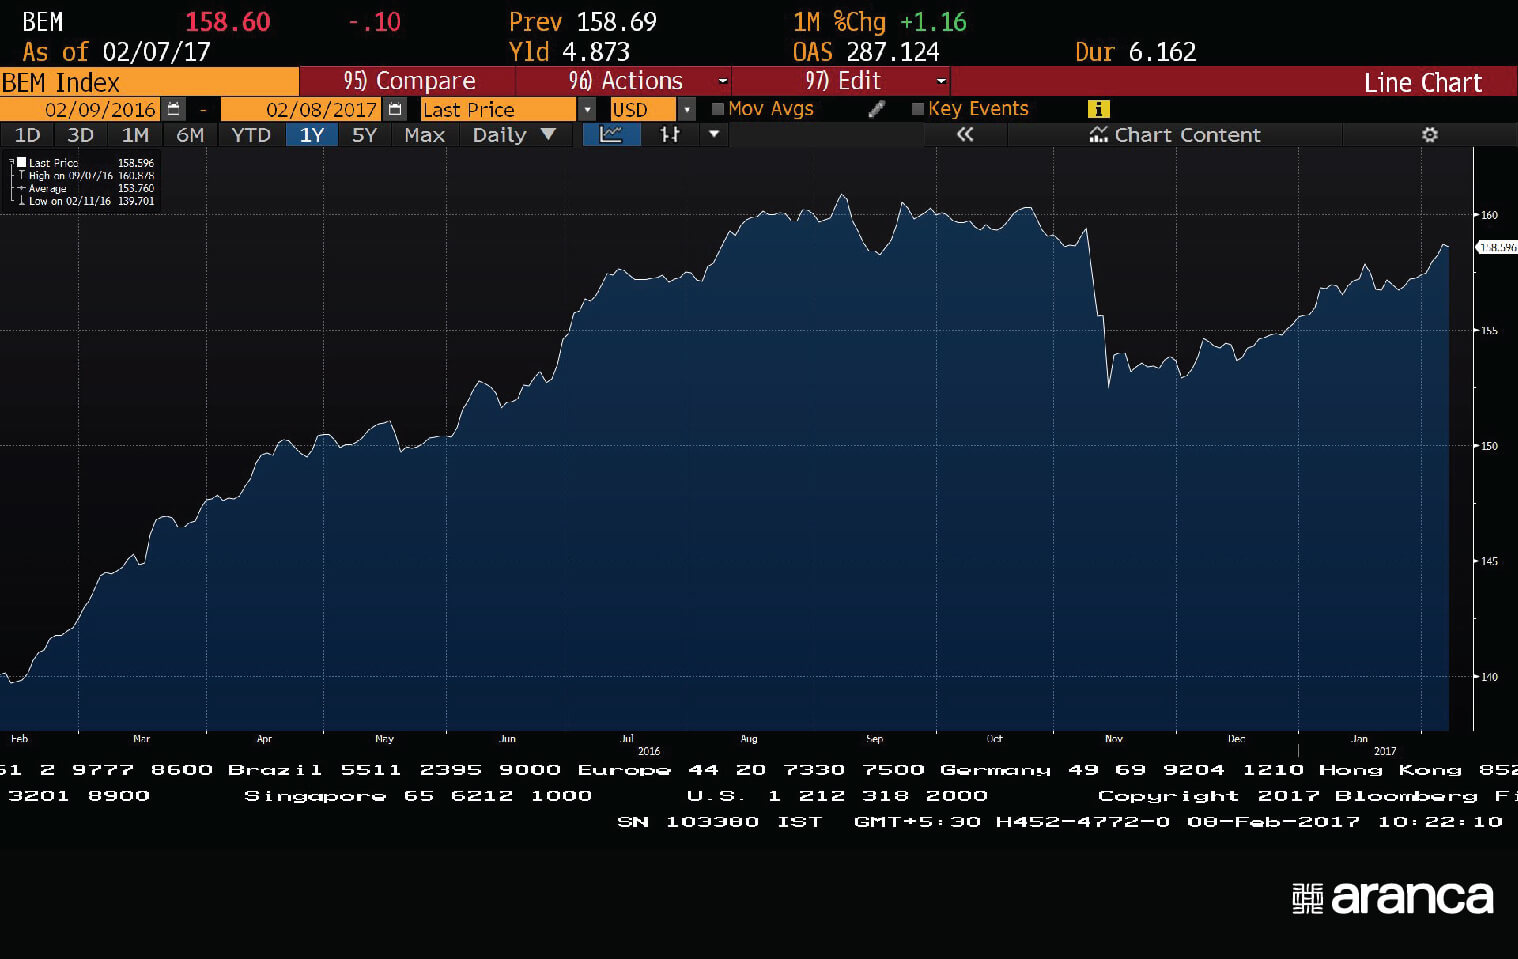 BEM - BBG Emerging Market Composite Bond Index